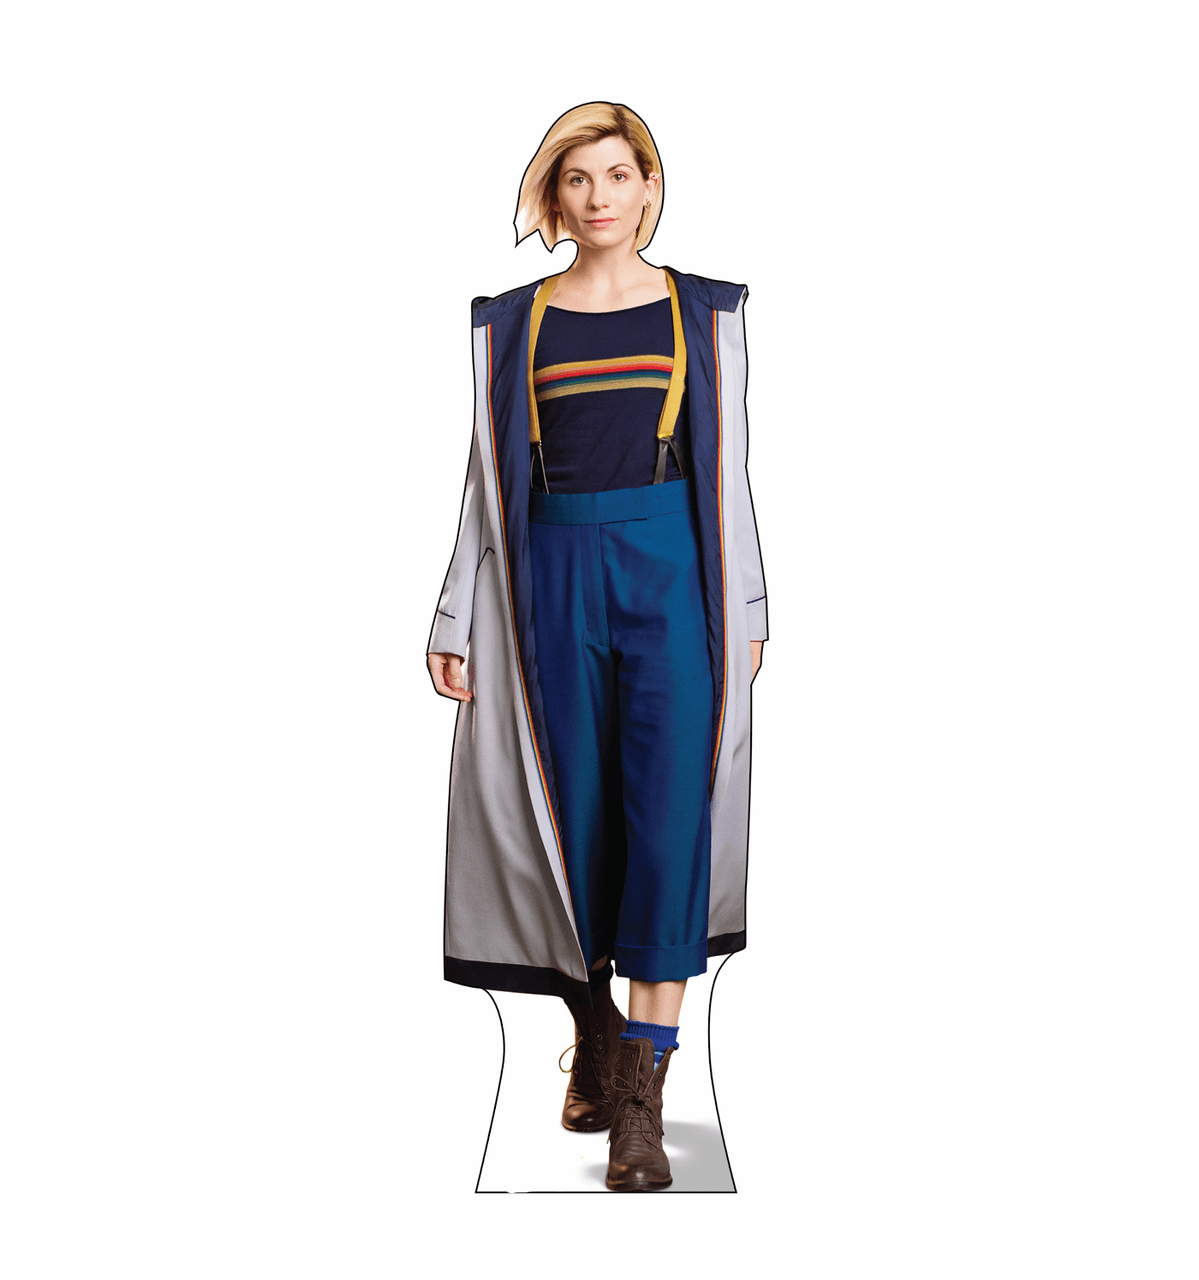 Doctor Who Standee